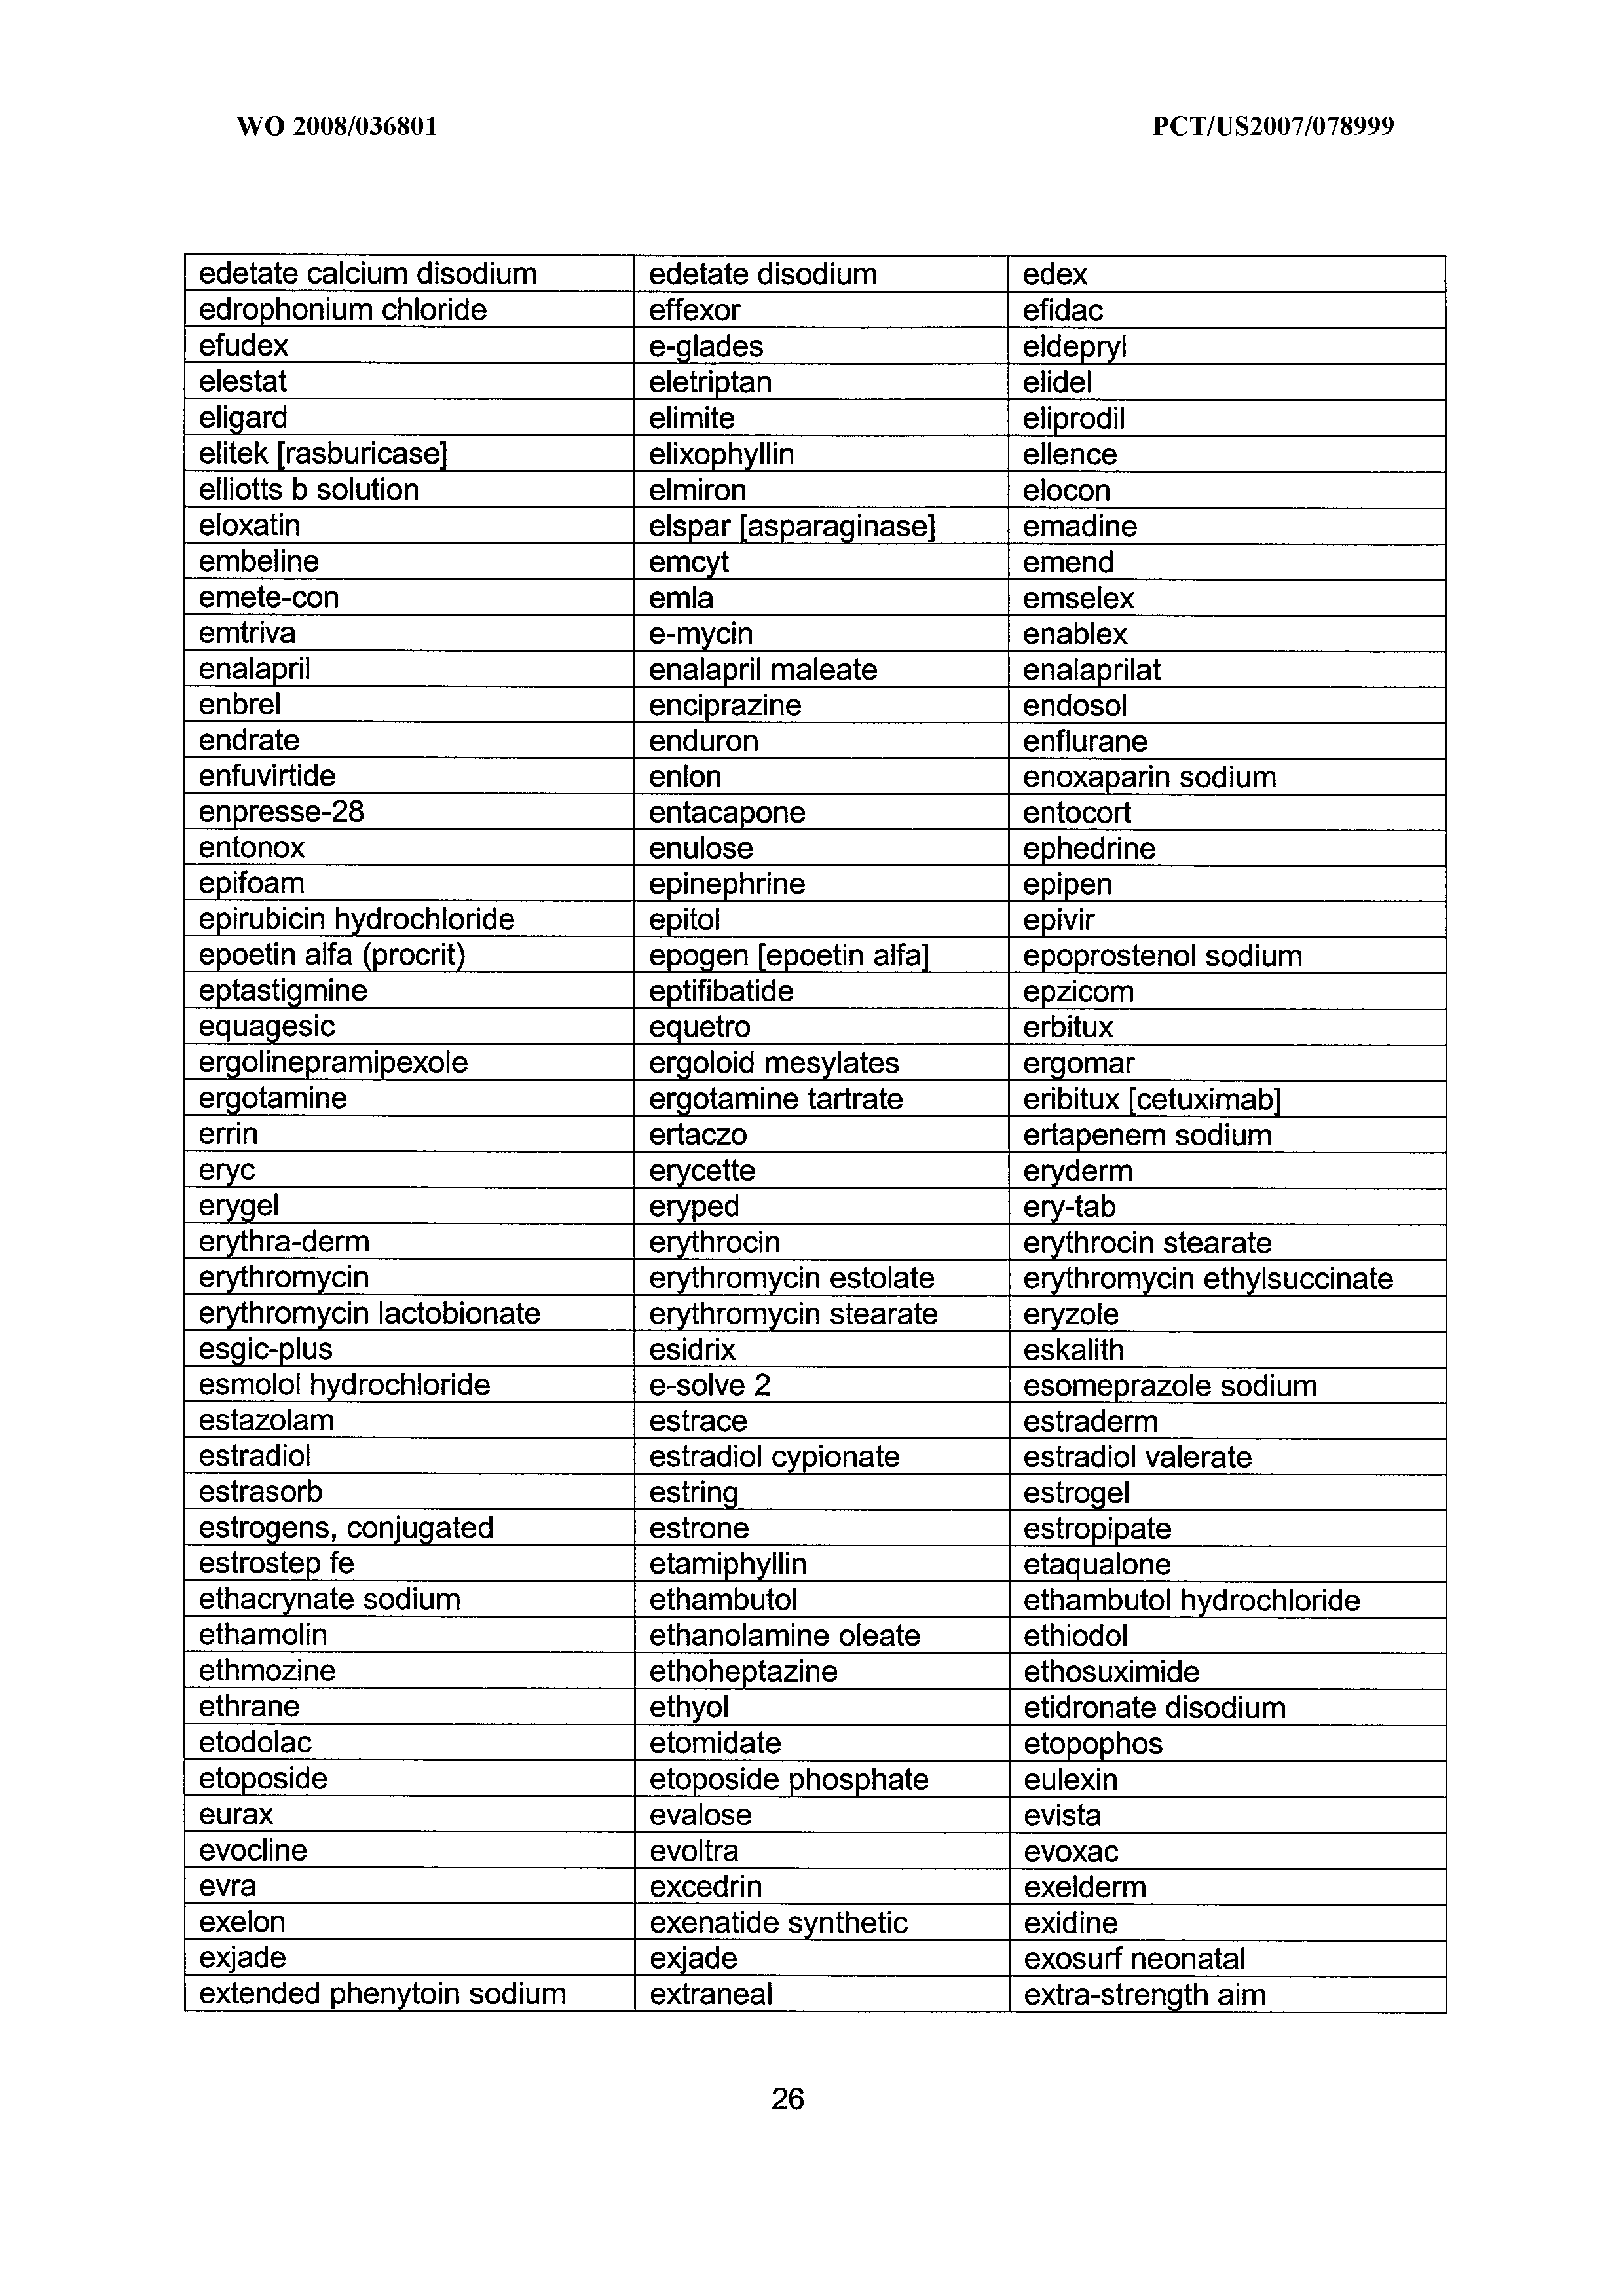 WO 2008/036801 A2 - Methods And Systems Of Delivering